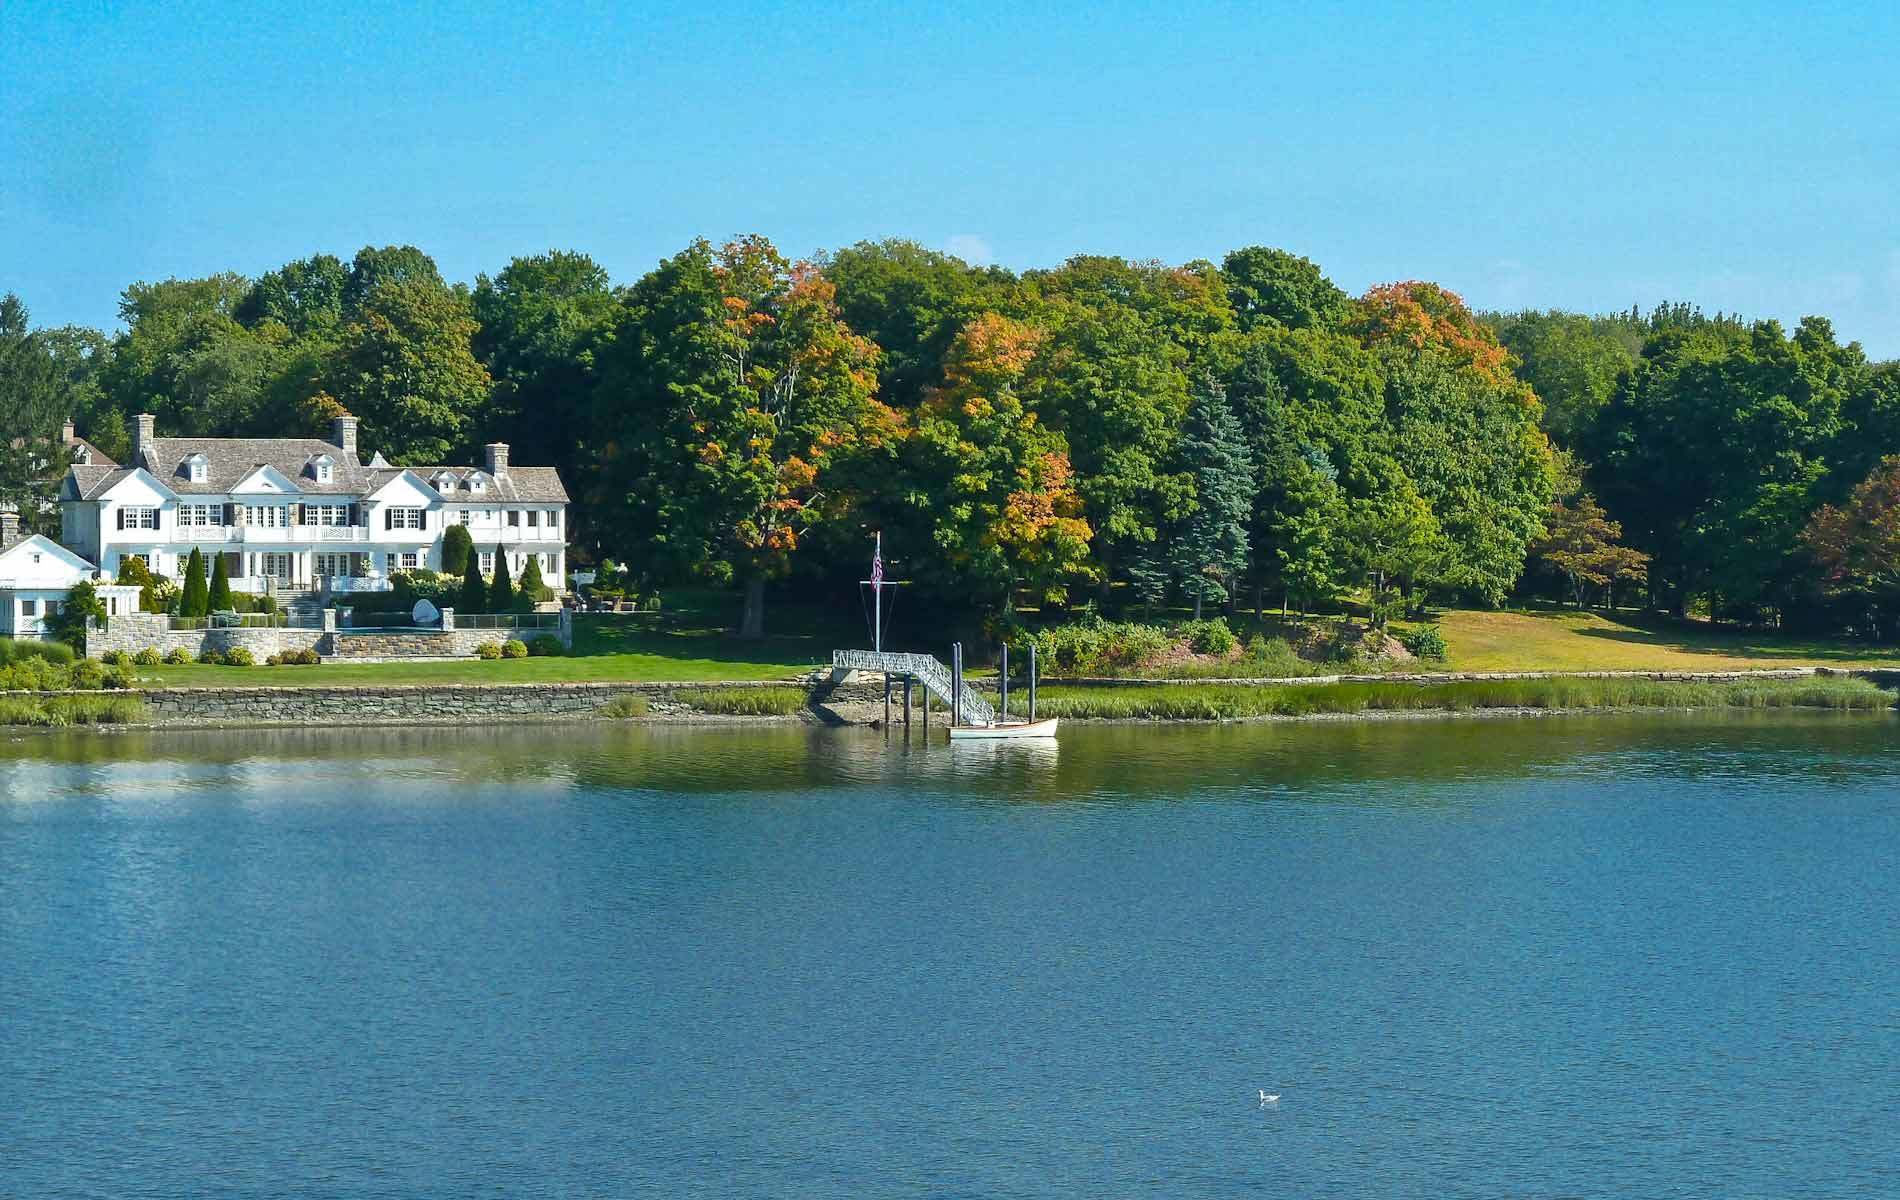 Waterfront Homes for Sale in Greenwich CT: Ocean Beach View, Lake